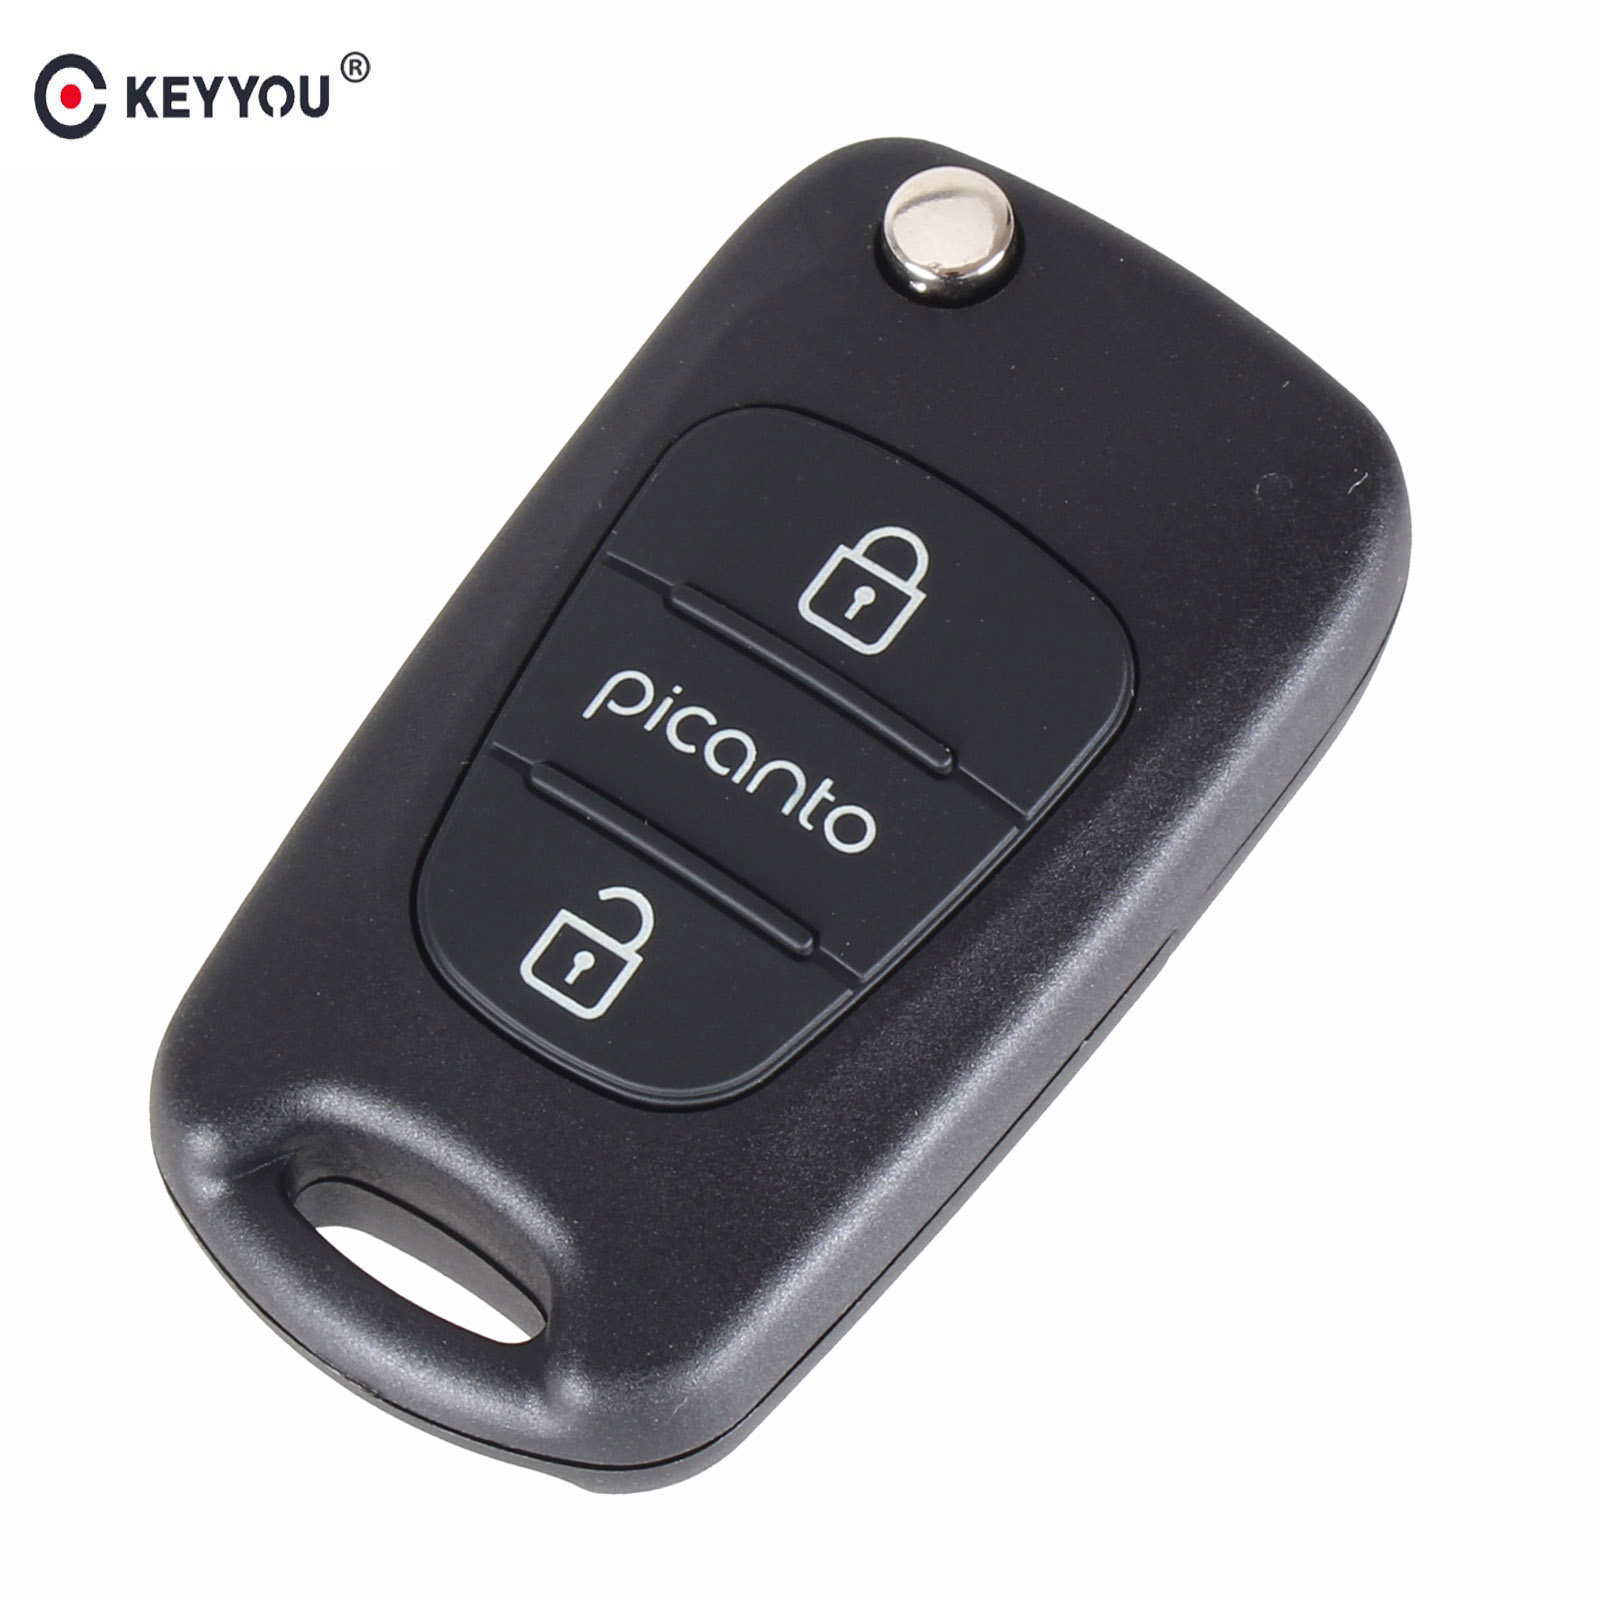 KEYYOU New 3 Buttons Flip Folding Remote Key Shell For KIA Picanto Remote key Case Fob keyyou new 3 buttons flip remote key shell for hyundai i30 ix35 kia k2 k5 folding remote key case